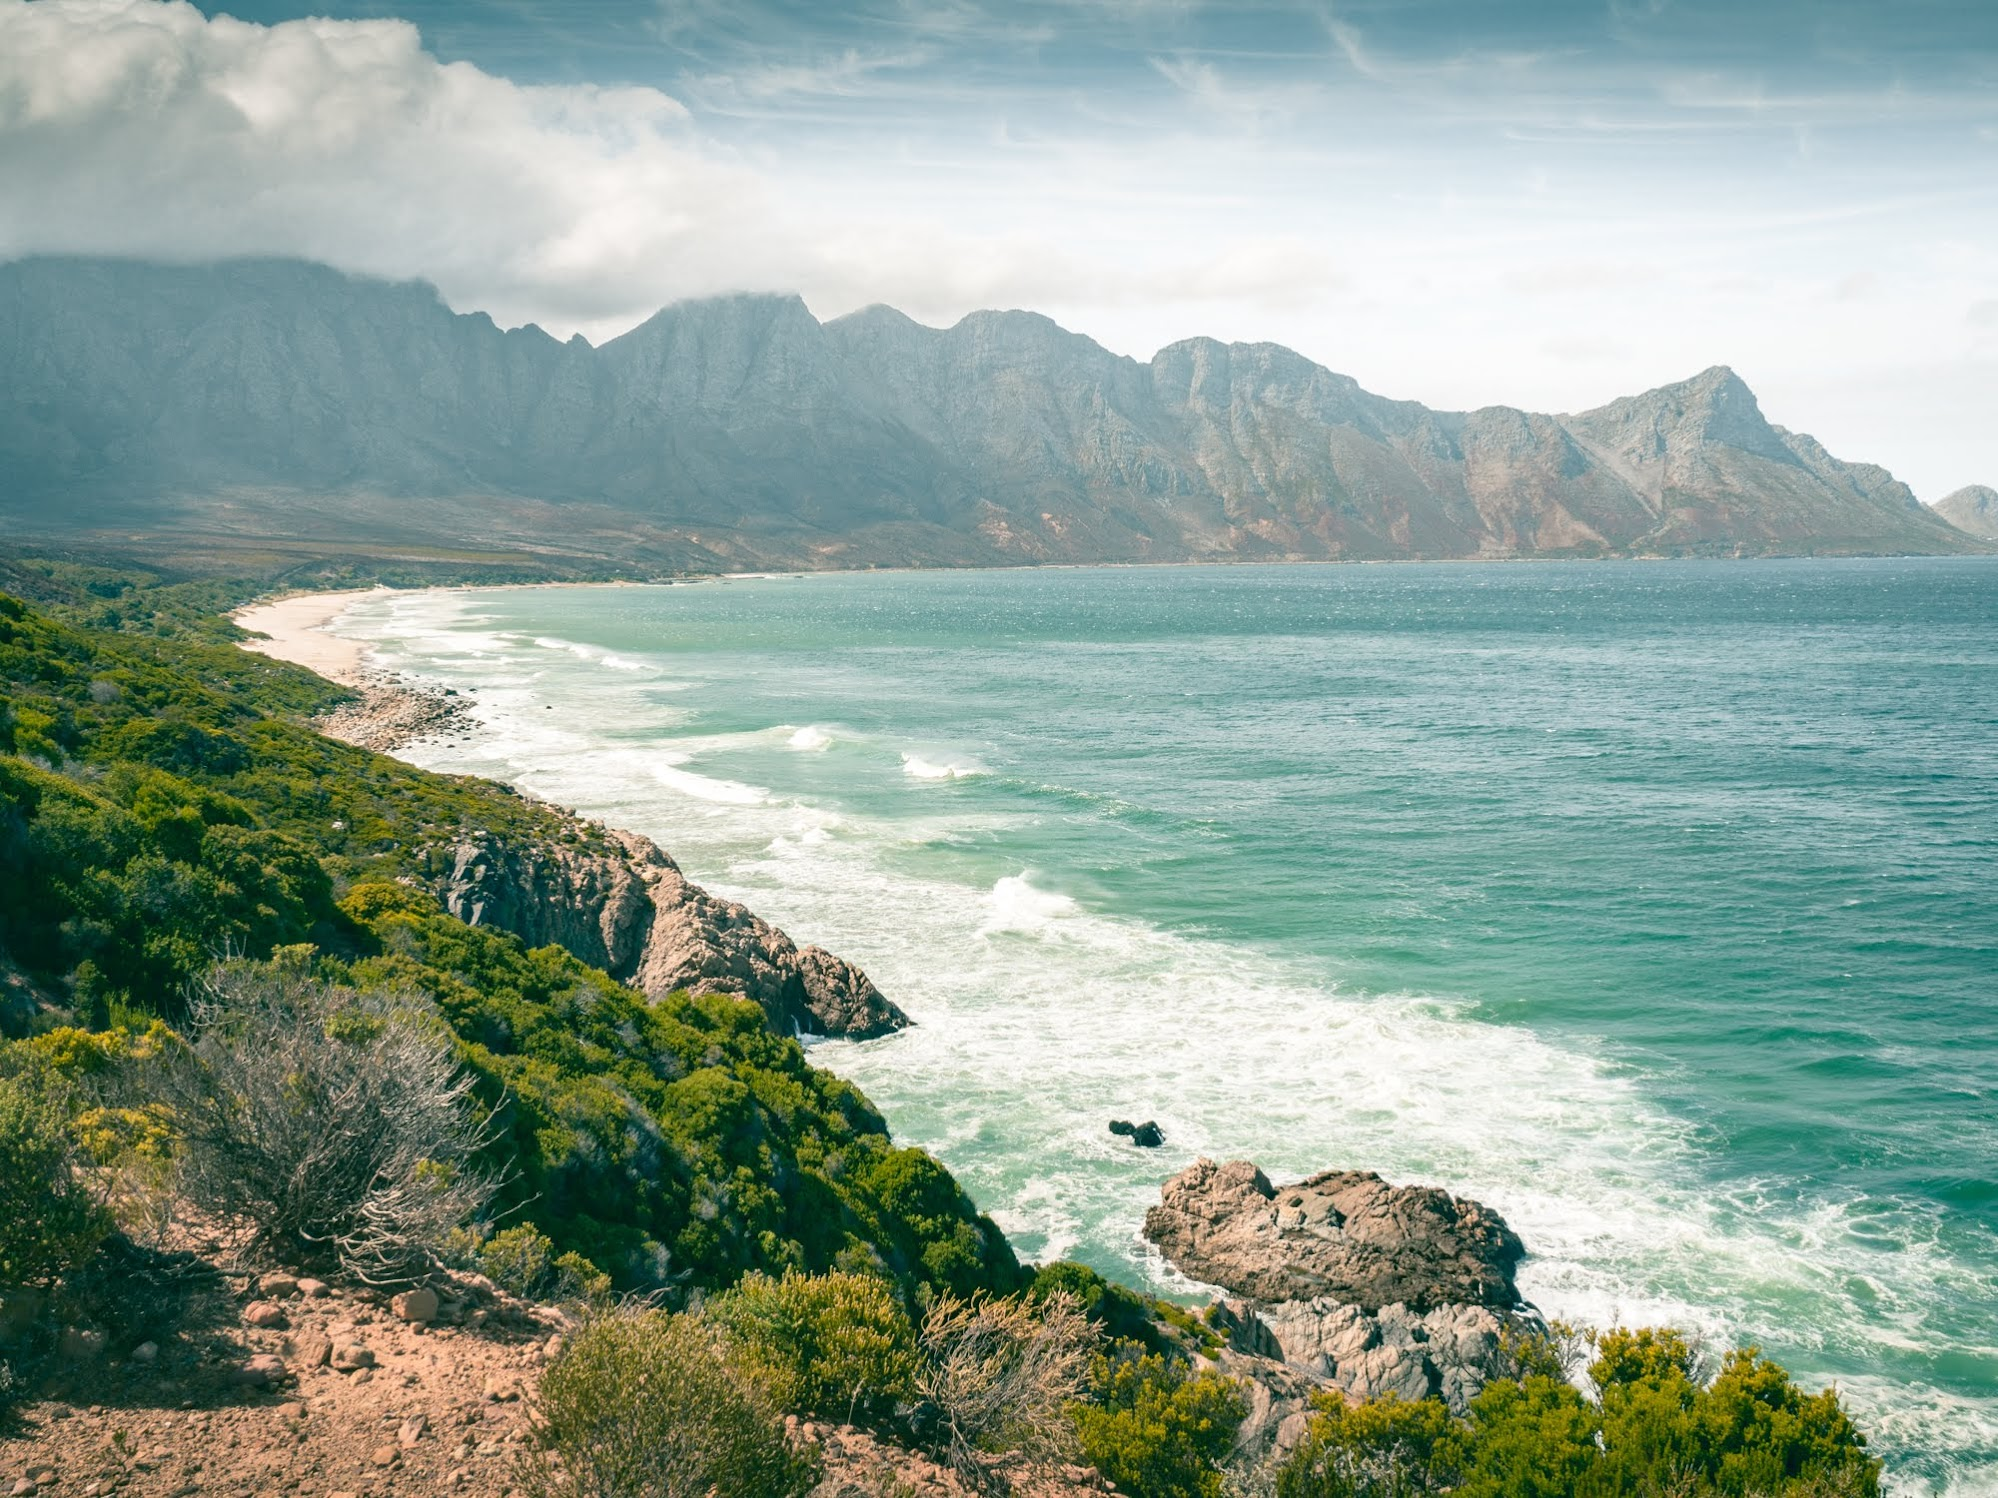 2 weeks South Africa itinerary includes beautiful coastal drives such as this one.